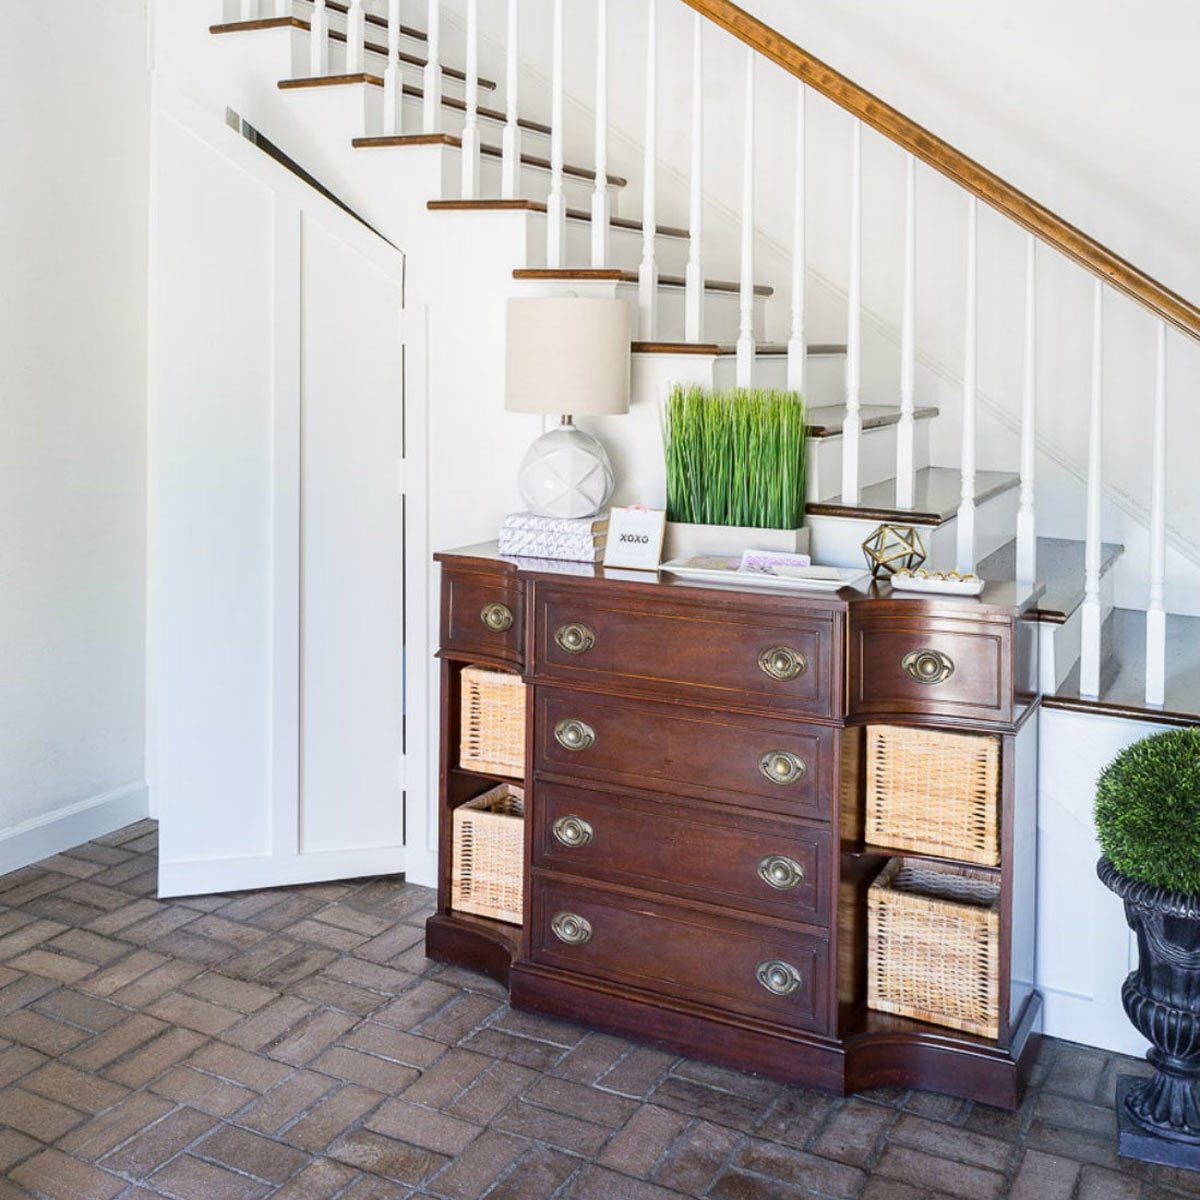 10 Incredible Hidden Rooms The Family Handyman